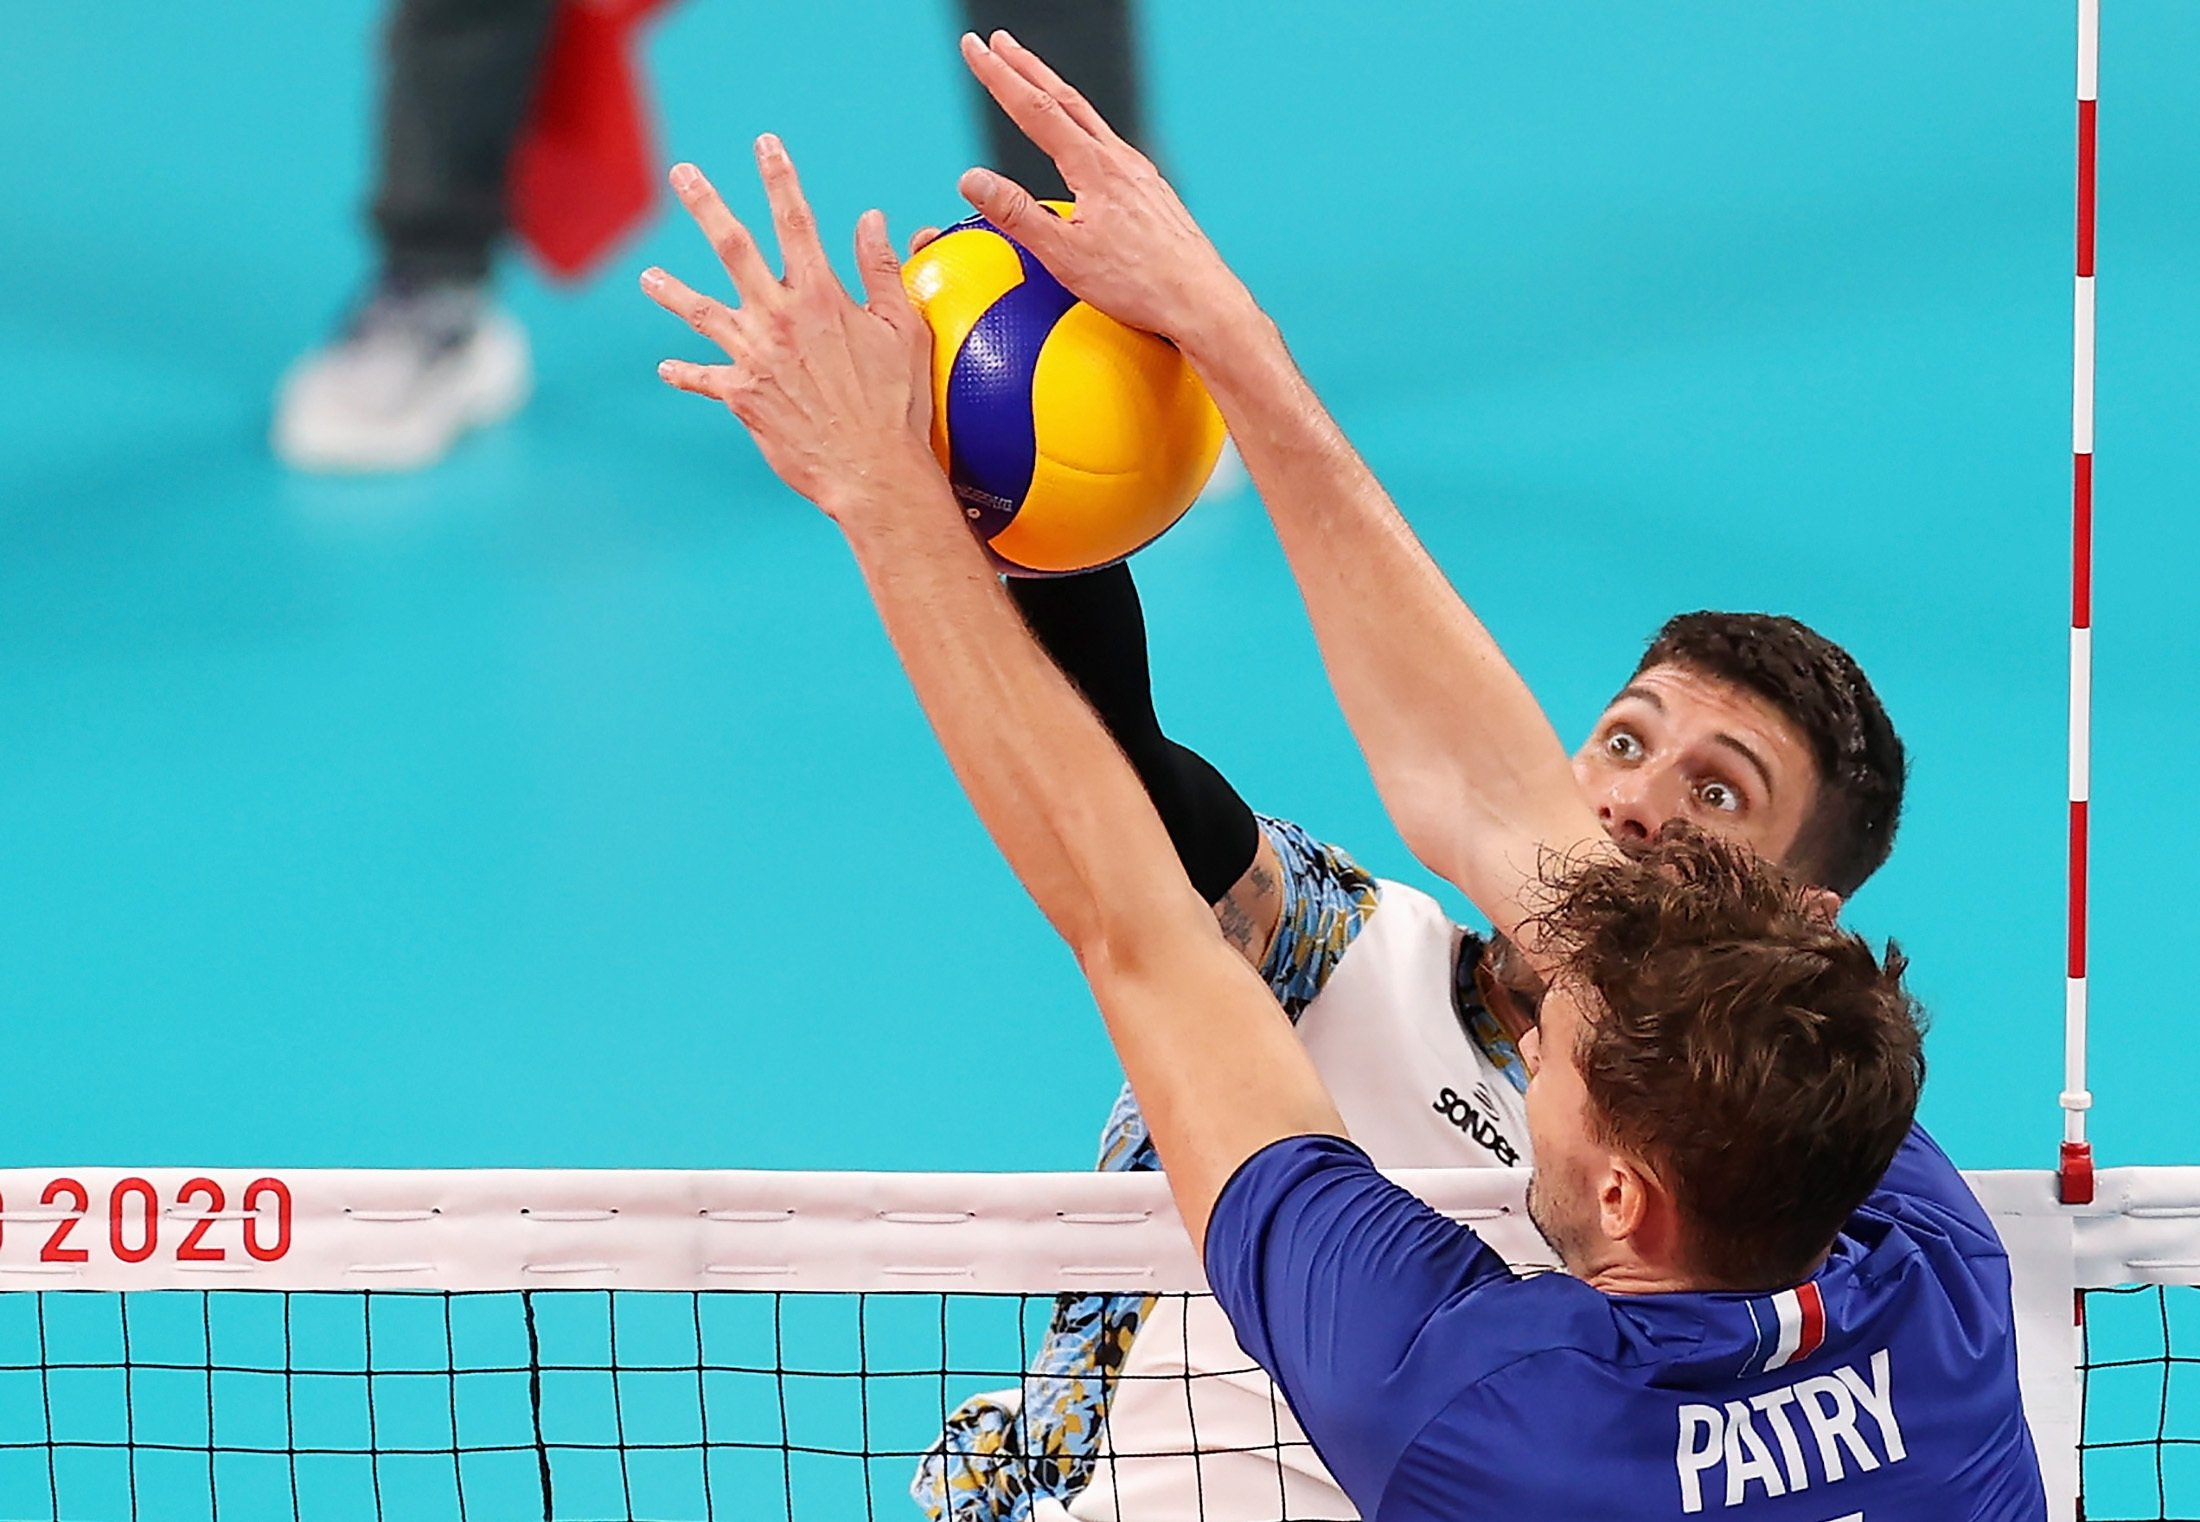 Facundo Conte #7 of Team Argentina competes against Jean Patry #4 of Team France during the Men's Volleyball Semifinals on day thirteen of the Tokyo 2020 Olympic Games at Ariake Arena in Tokyo, Japan, Aug. 5, 2021. (Getty Images Photo)